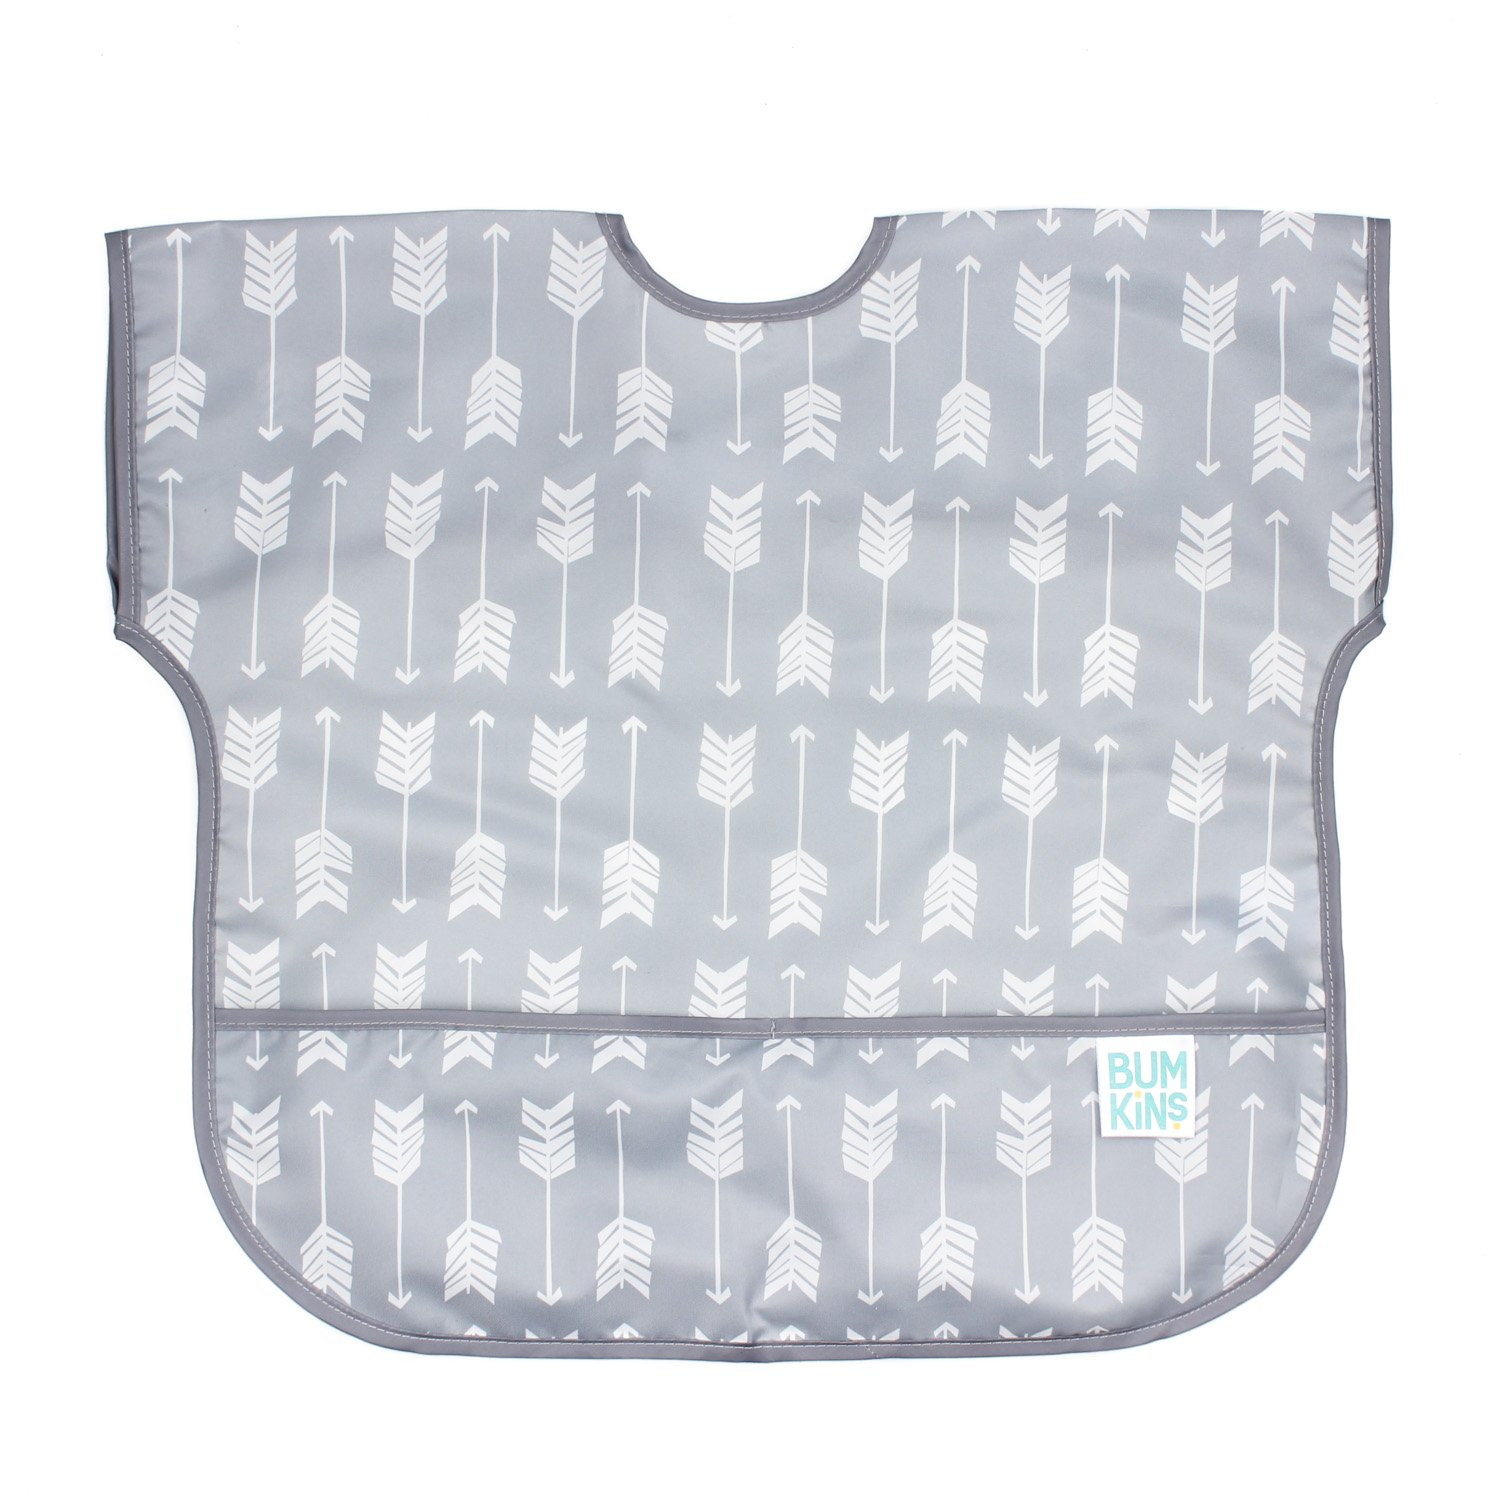 Bumkins Waterproof Junior Bib, Gray Chevron (1-3 Years) U-501